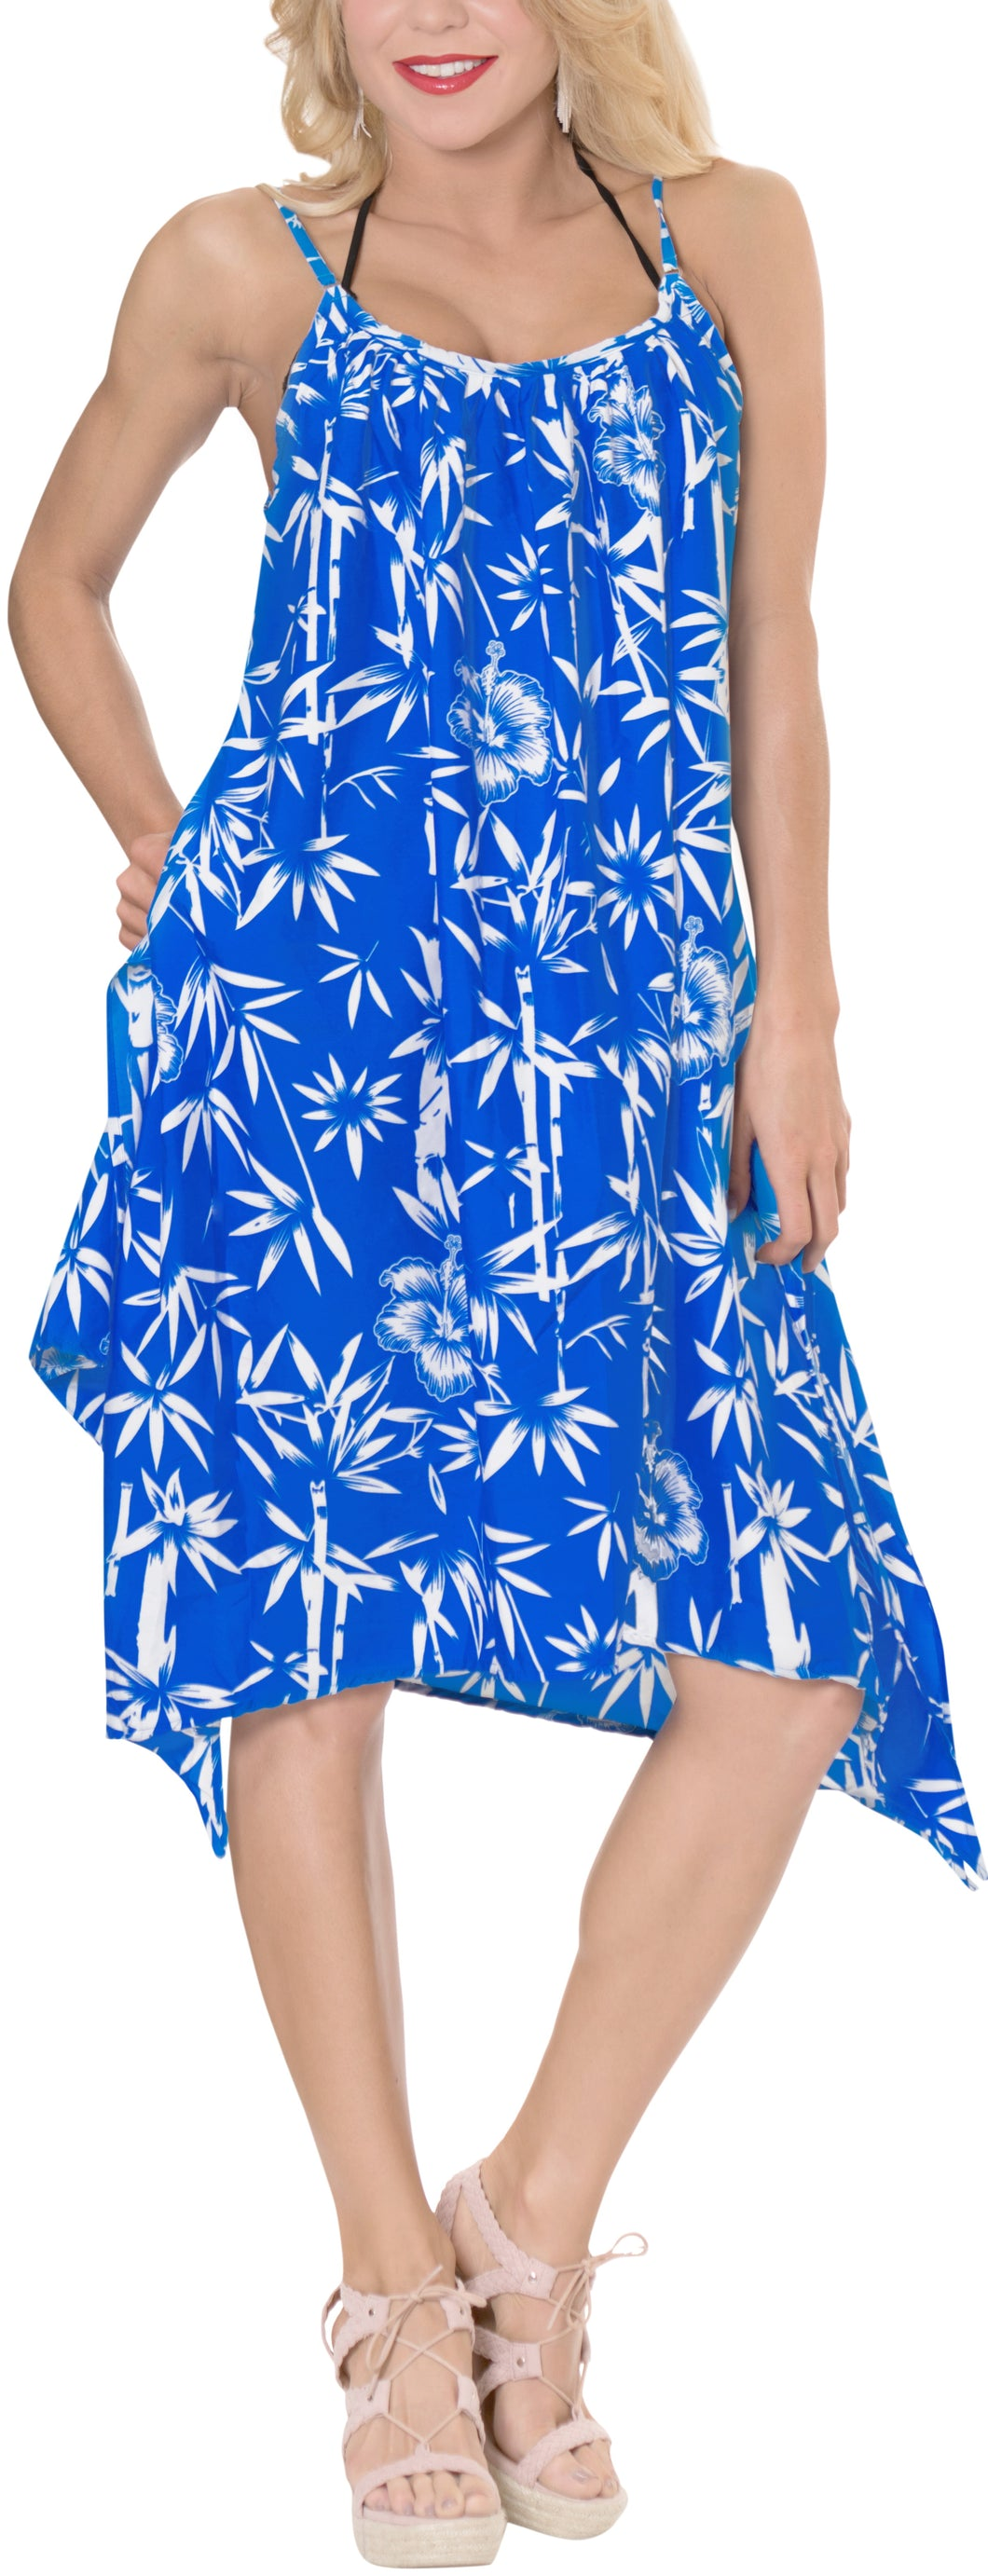 La Leela Likre Printed womens swimwear swimsuit bikini kimono cover up Lounge Office wear B_Blue Pinted